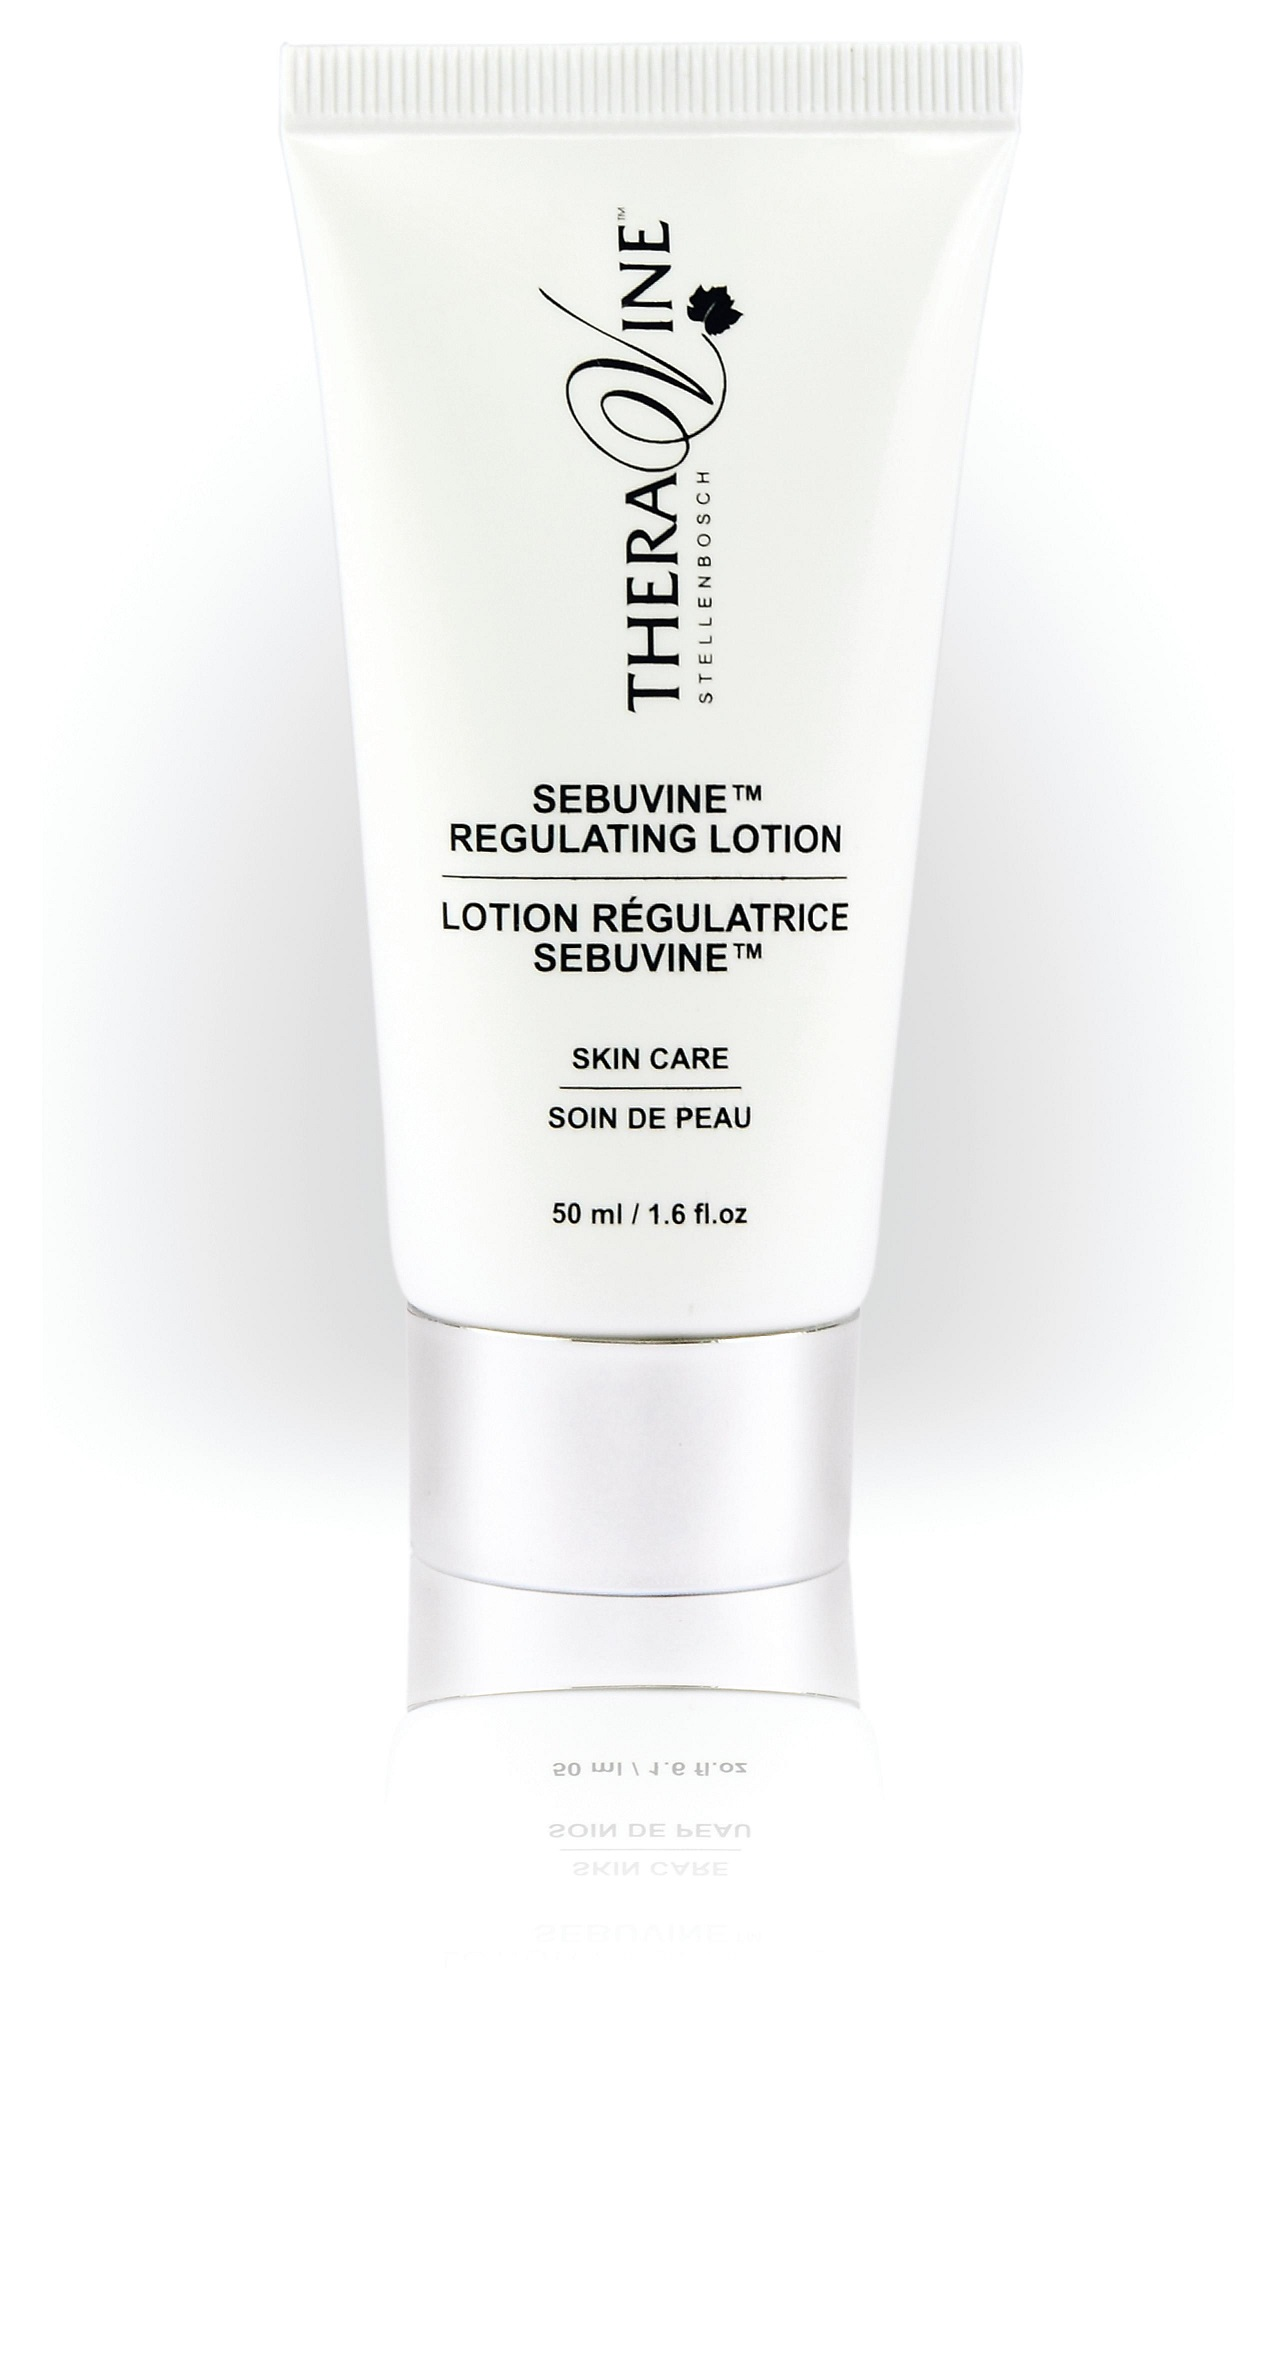 SebuVine Regulating Lotion 24h Creme